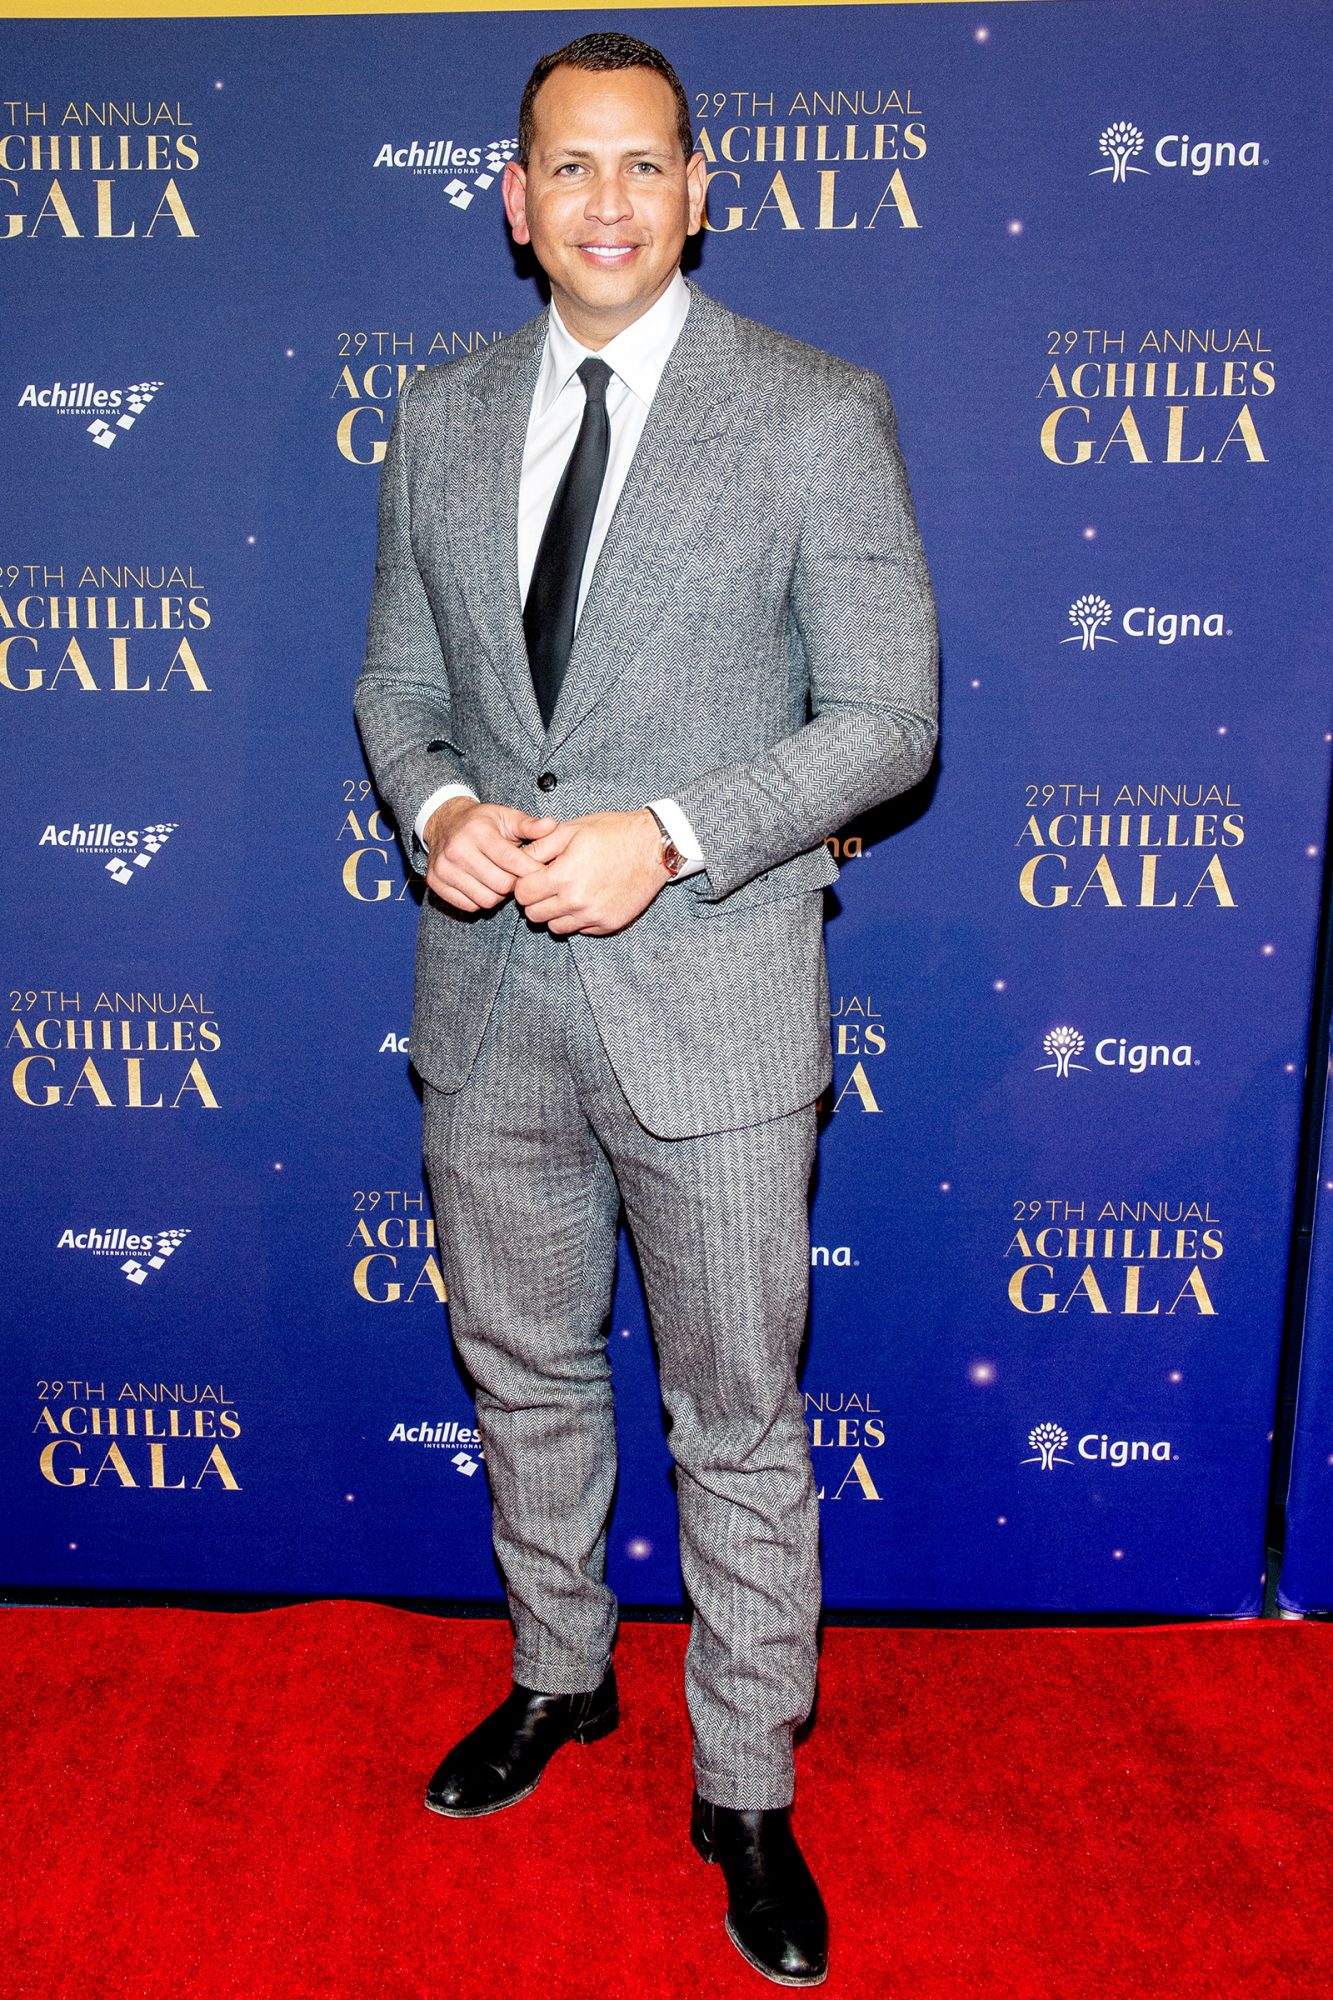 Alex Rodriguez attends the 29th Annual Achilles Gala at Cipriani South Street on November 20, 2019 in New York City